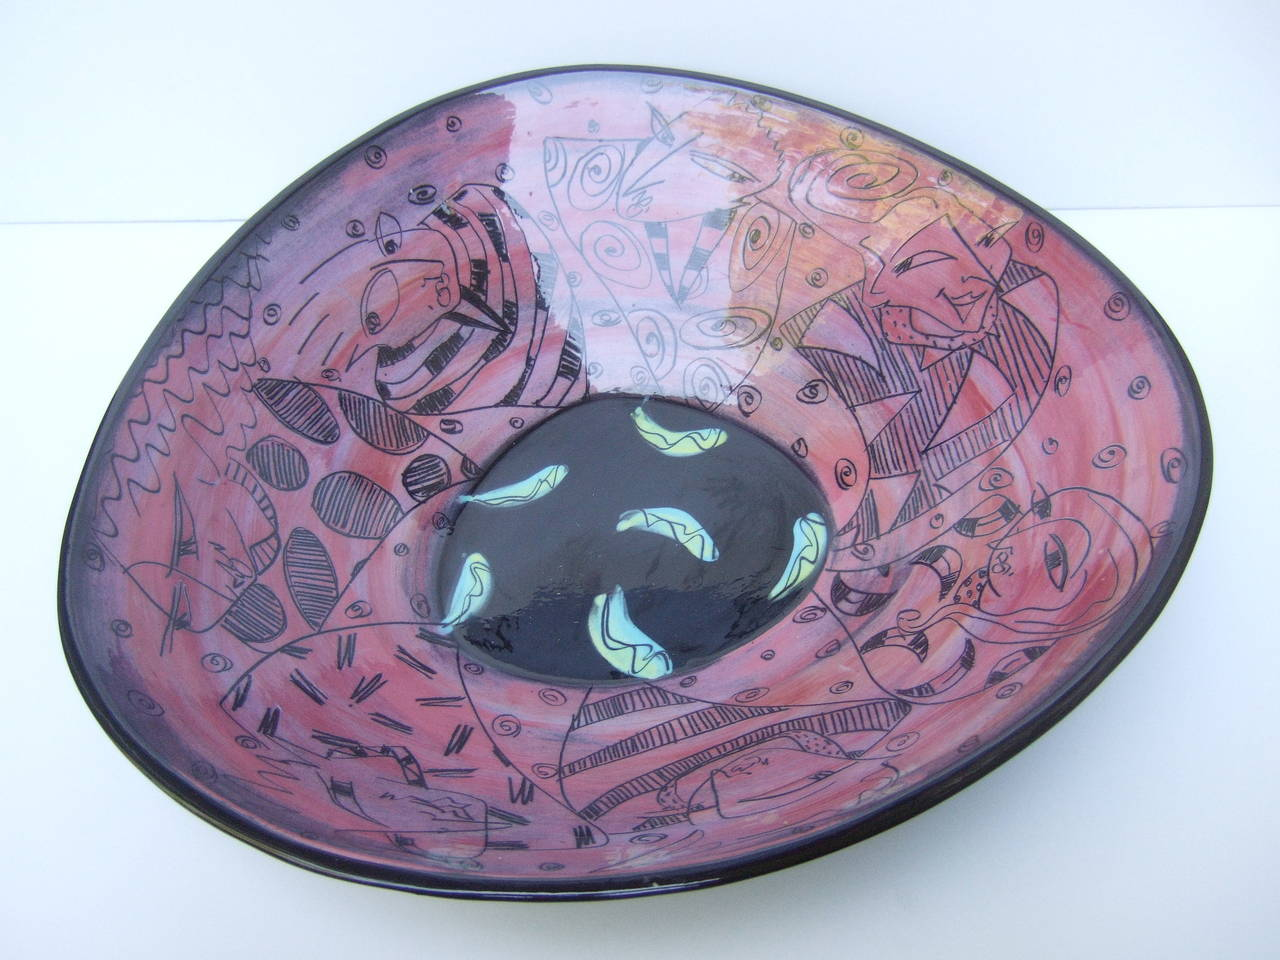 Artisan Ceramic Illustrated Bowl Designed by Odell  c 1995 For Sale 1